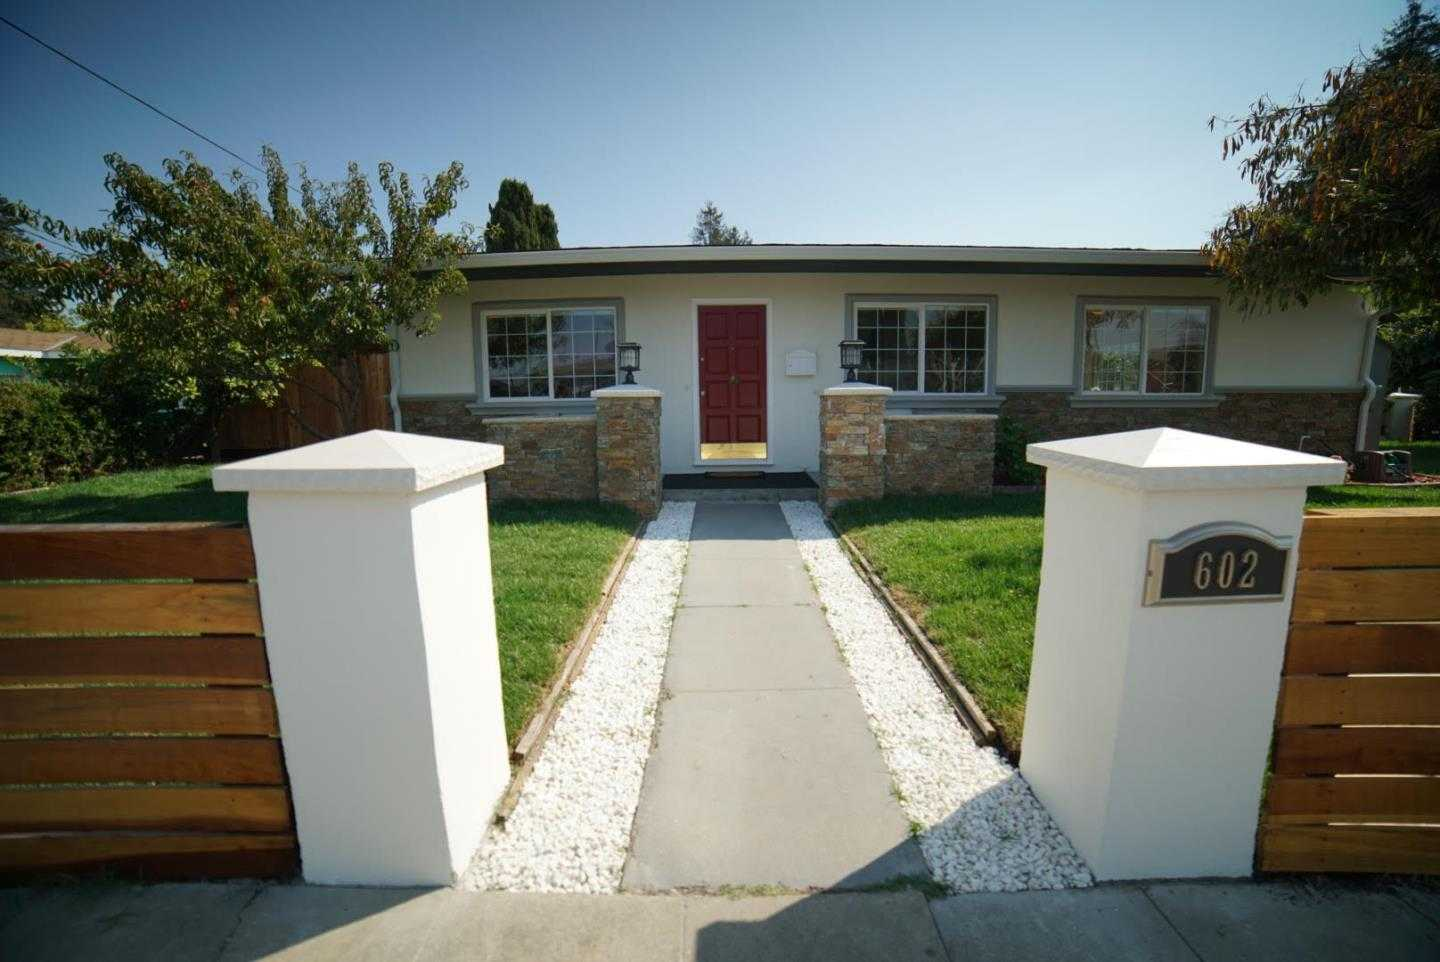 $1,200,000 - 3Br/2Ba -  for Sale in Sunnyvale